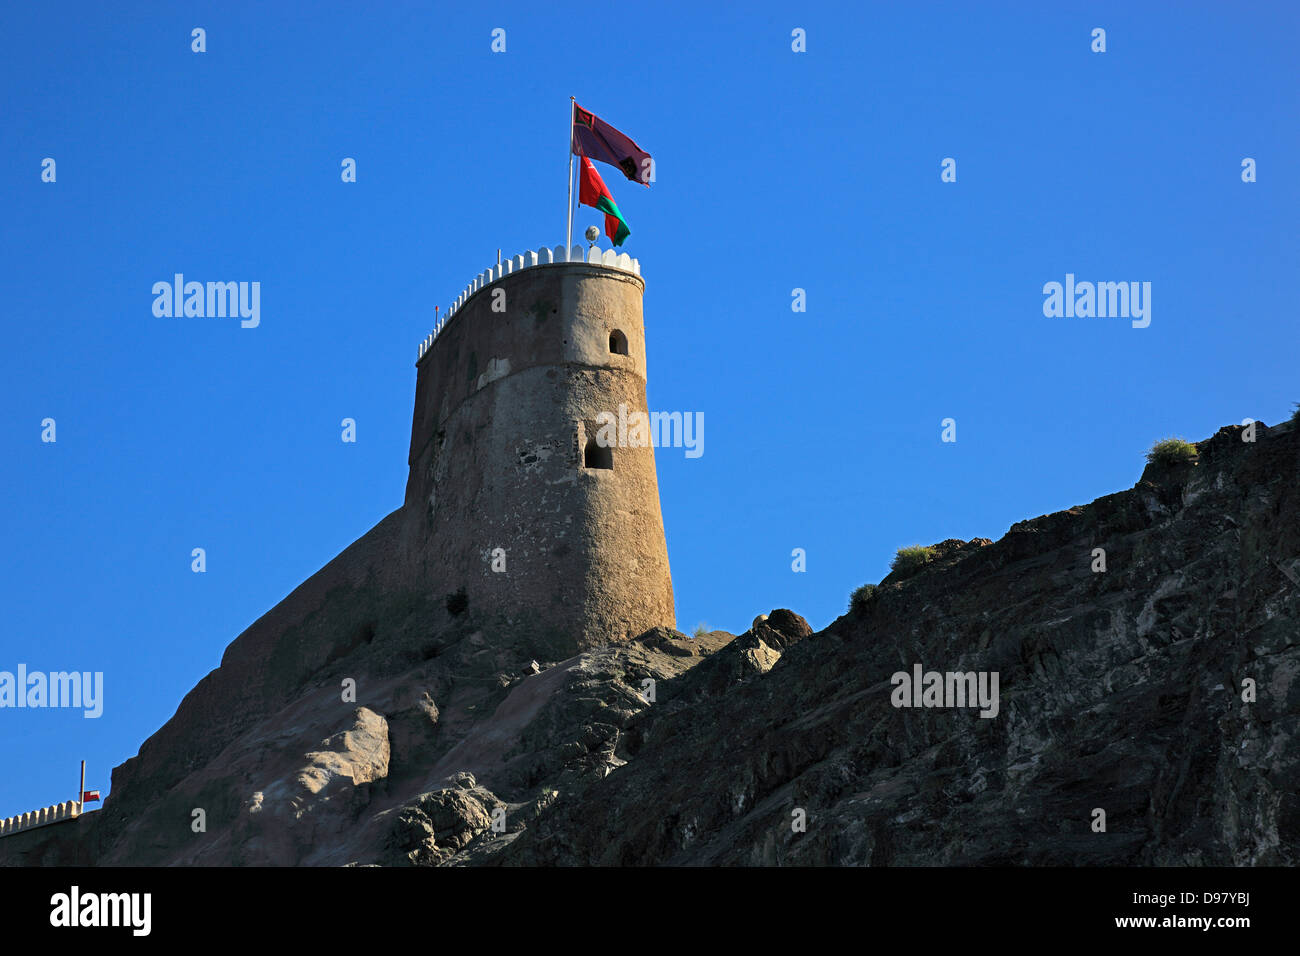 Military tower of the fort Mirani, Muscat, Oman Stock Photo